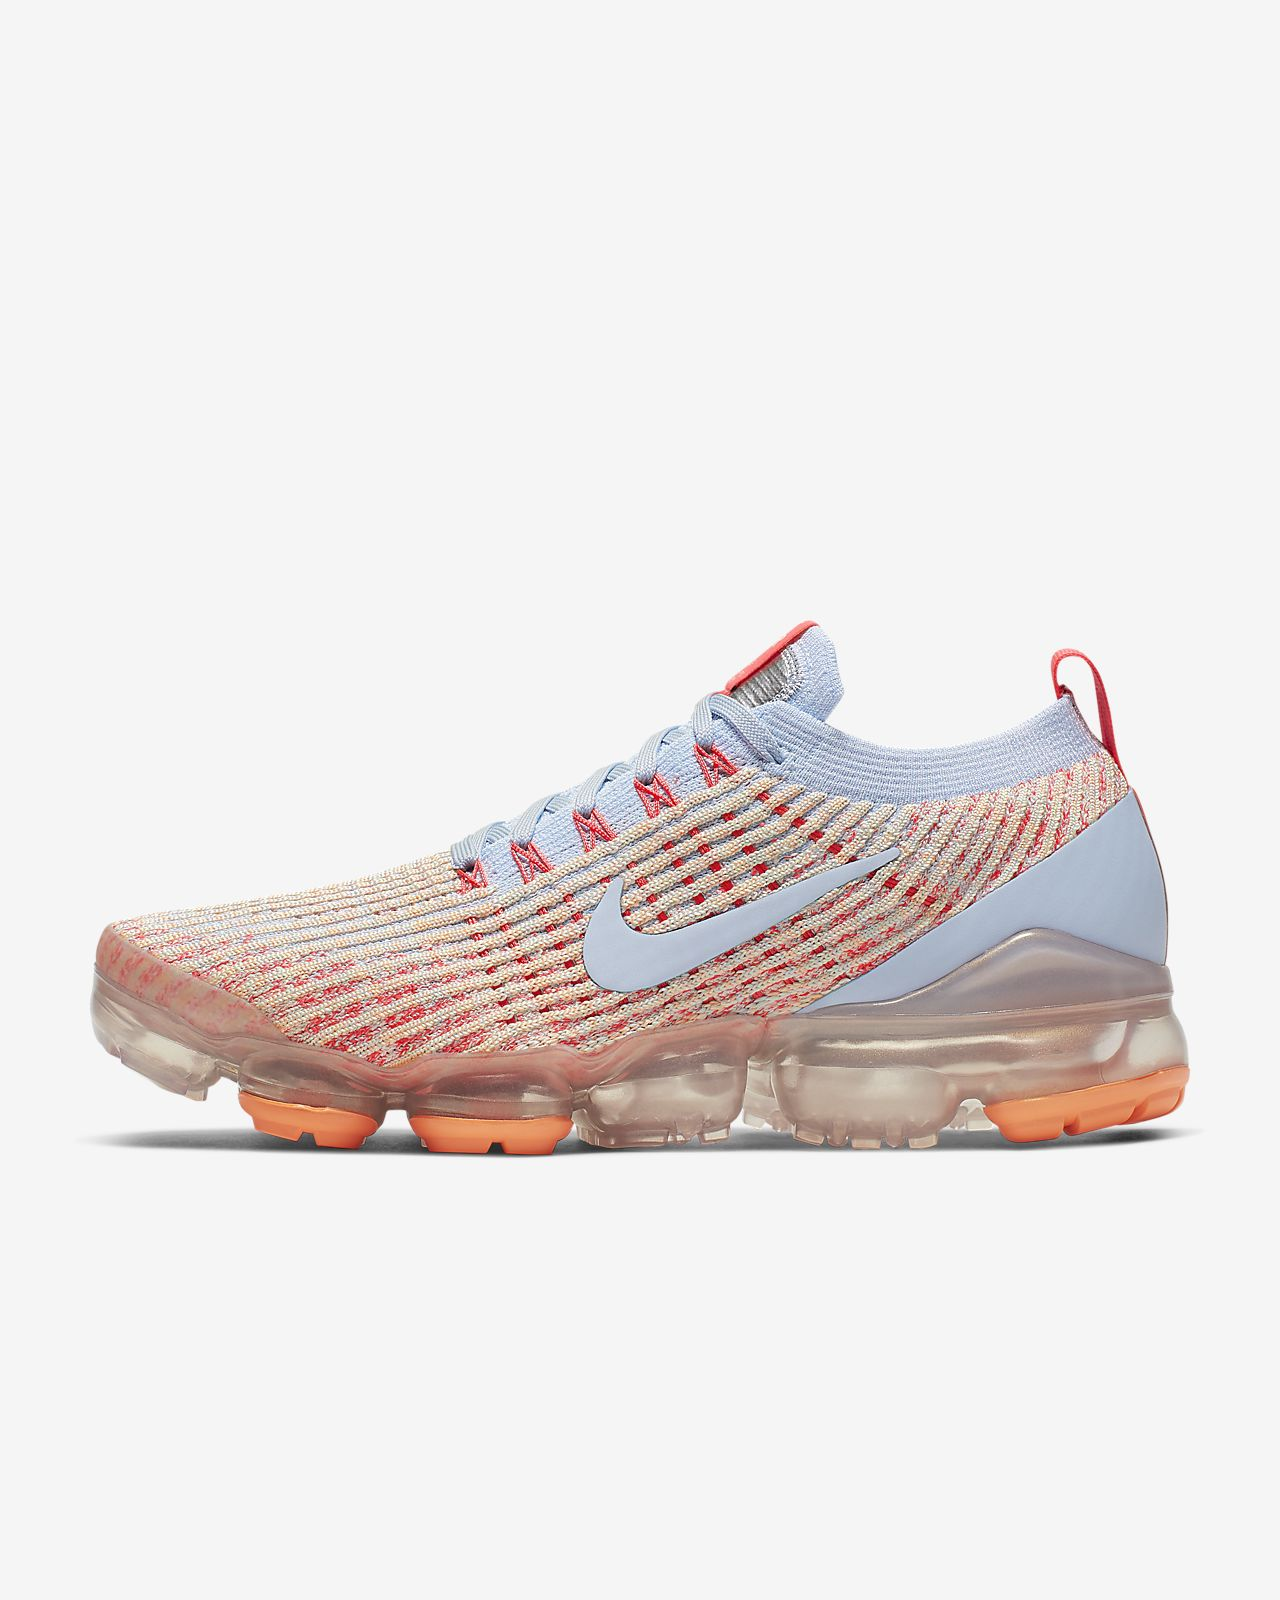 Pour Chaussure Air 3 Femme Vapormax Flyknit Nike POXTkiuwZ